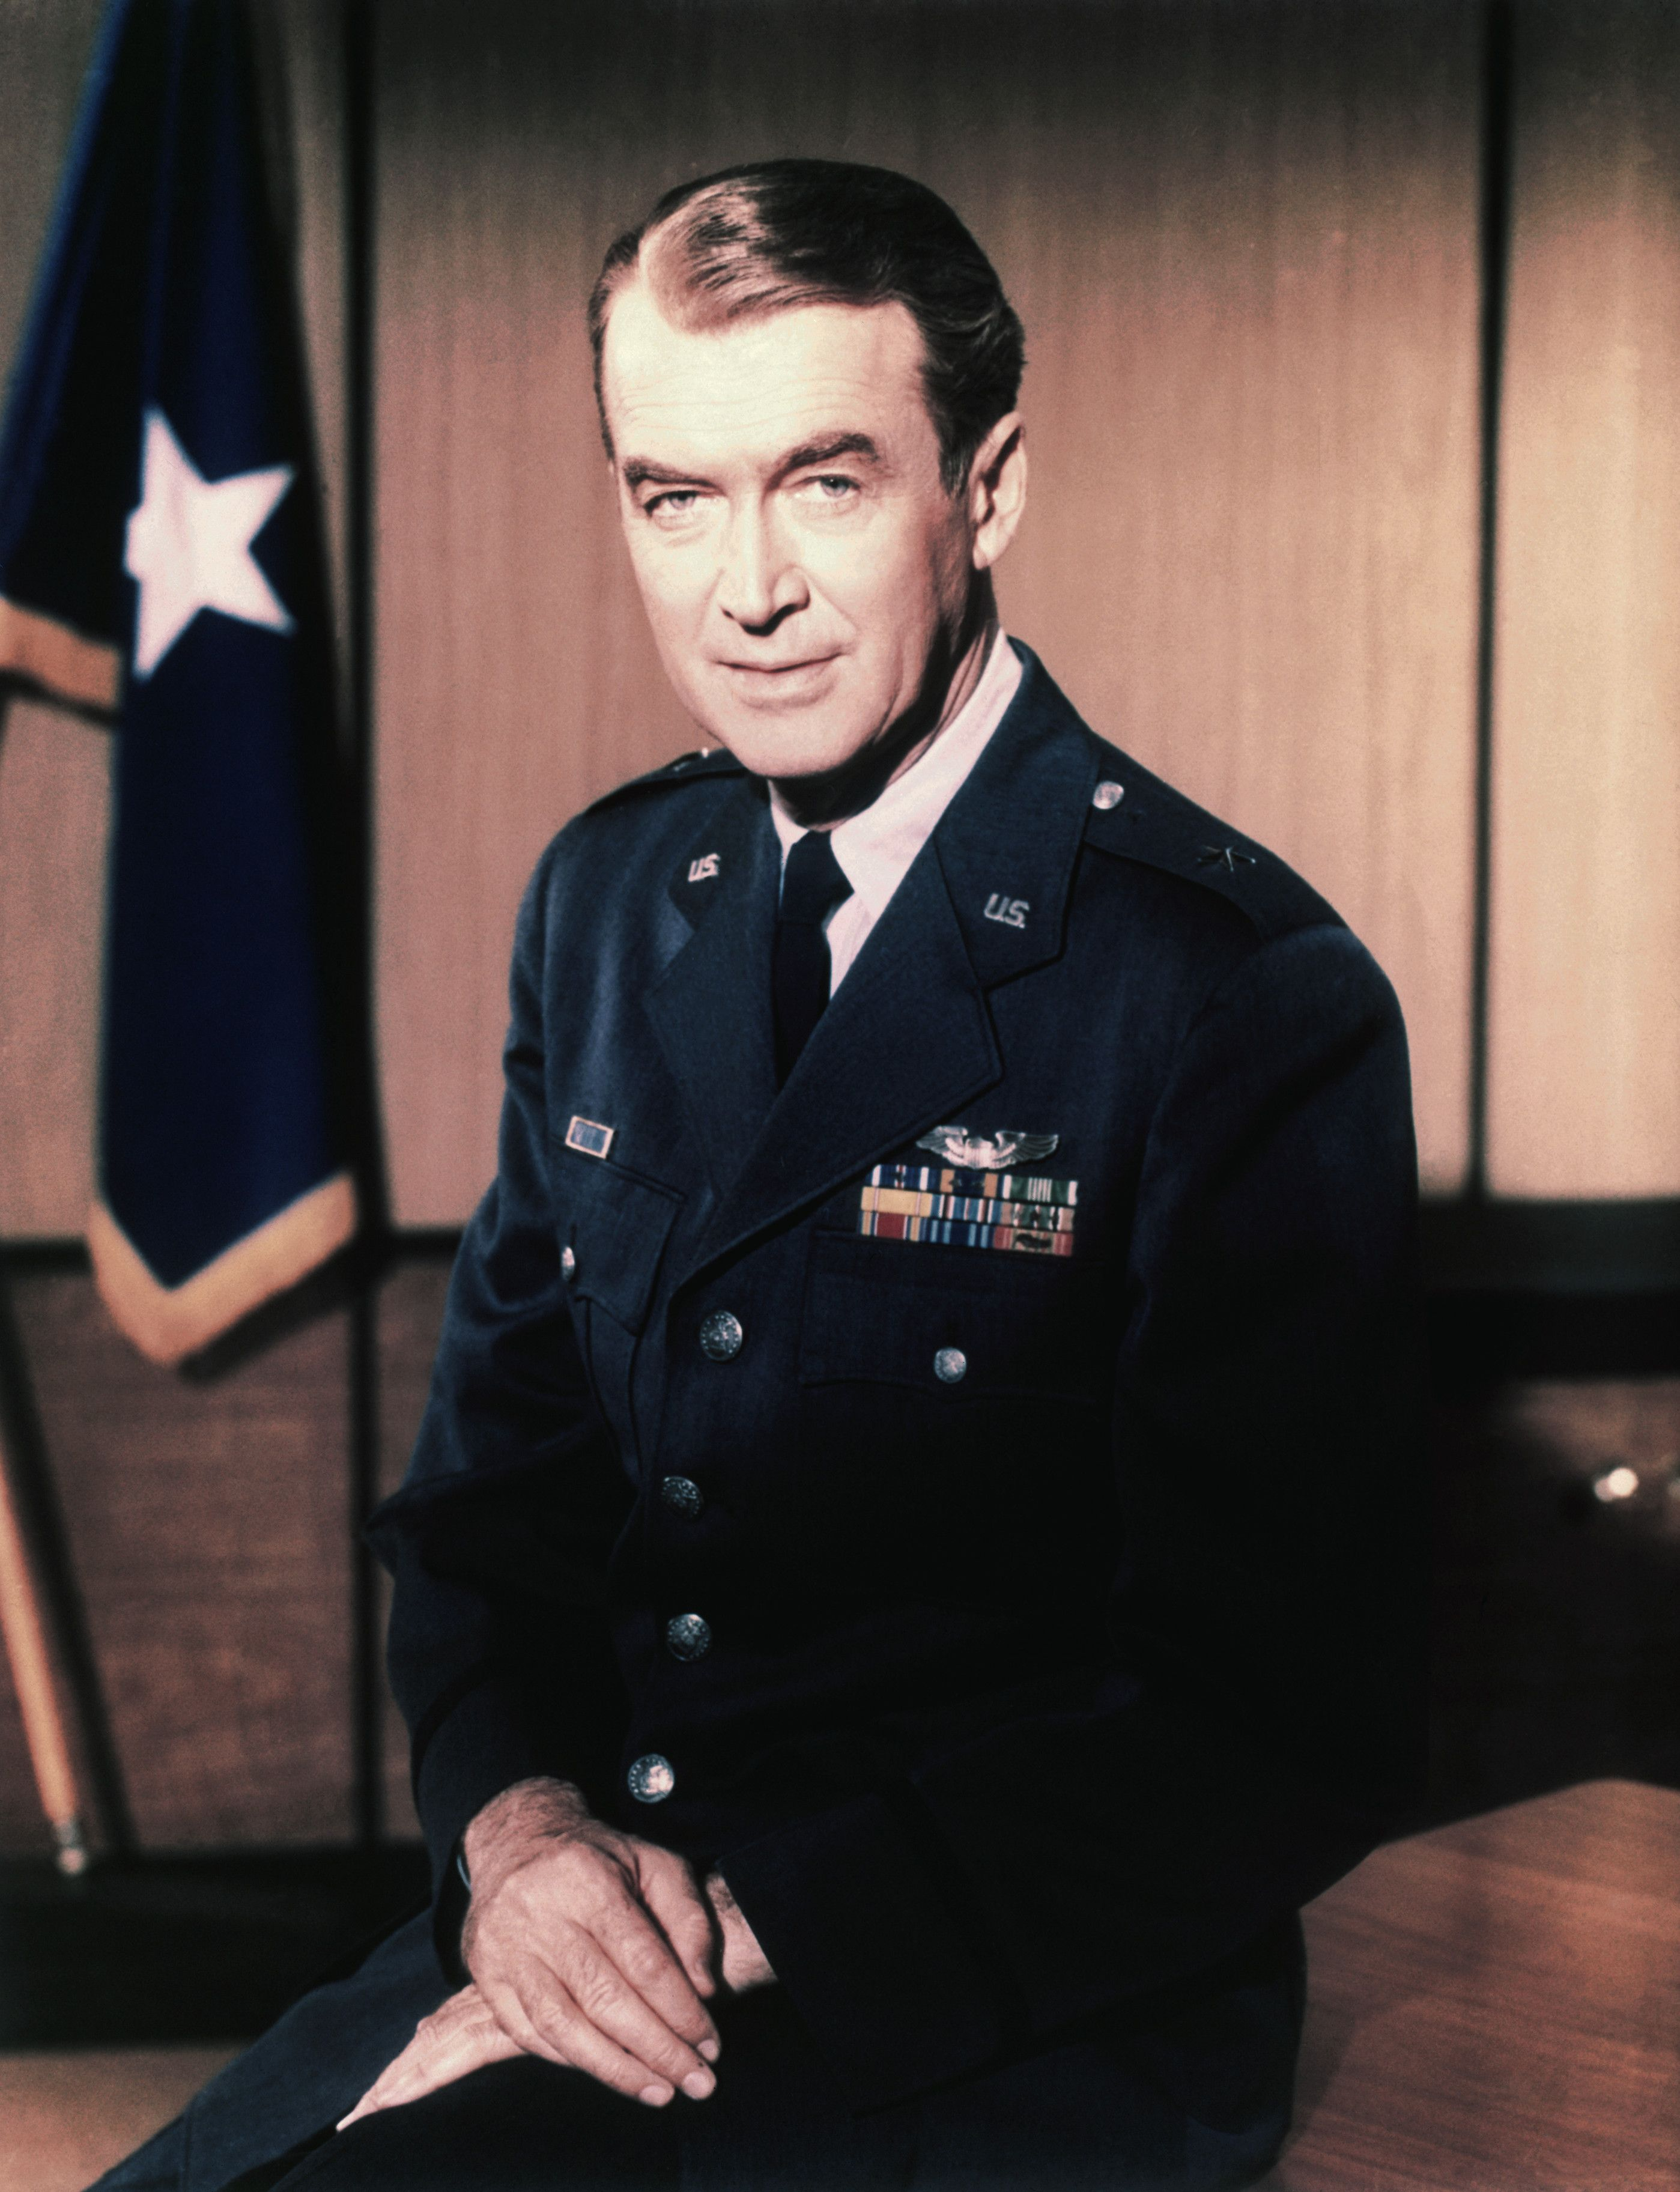 famous gay generals in the us military